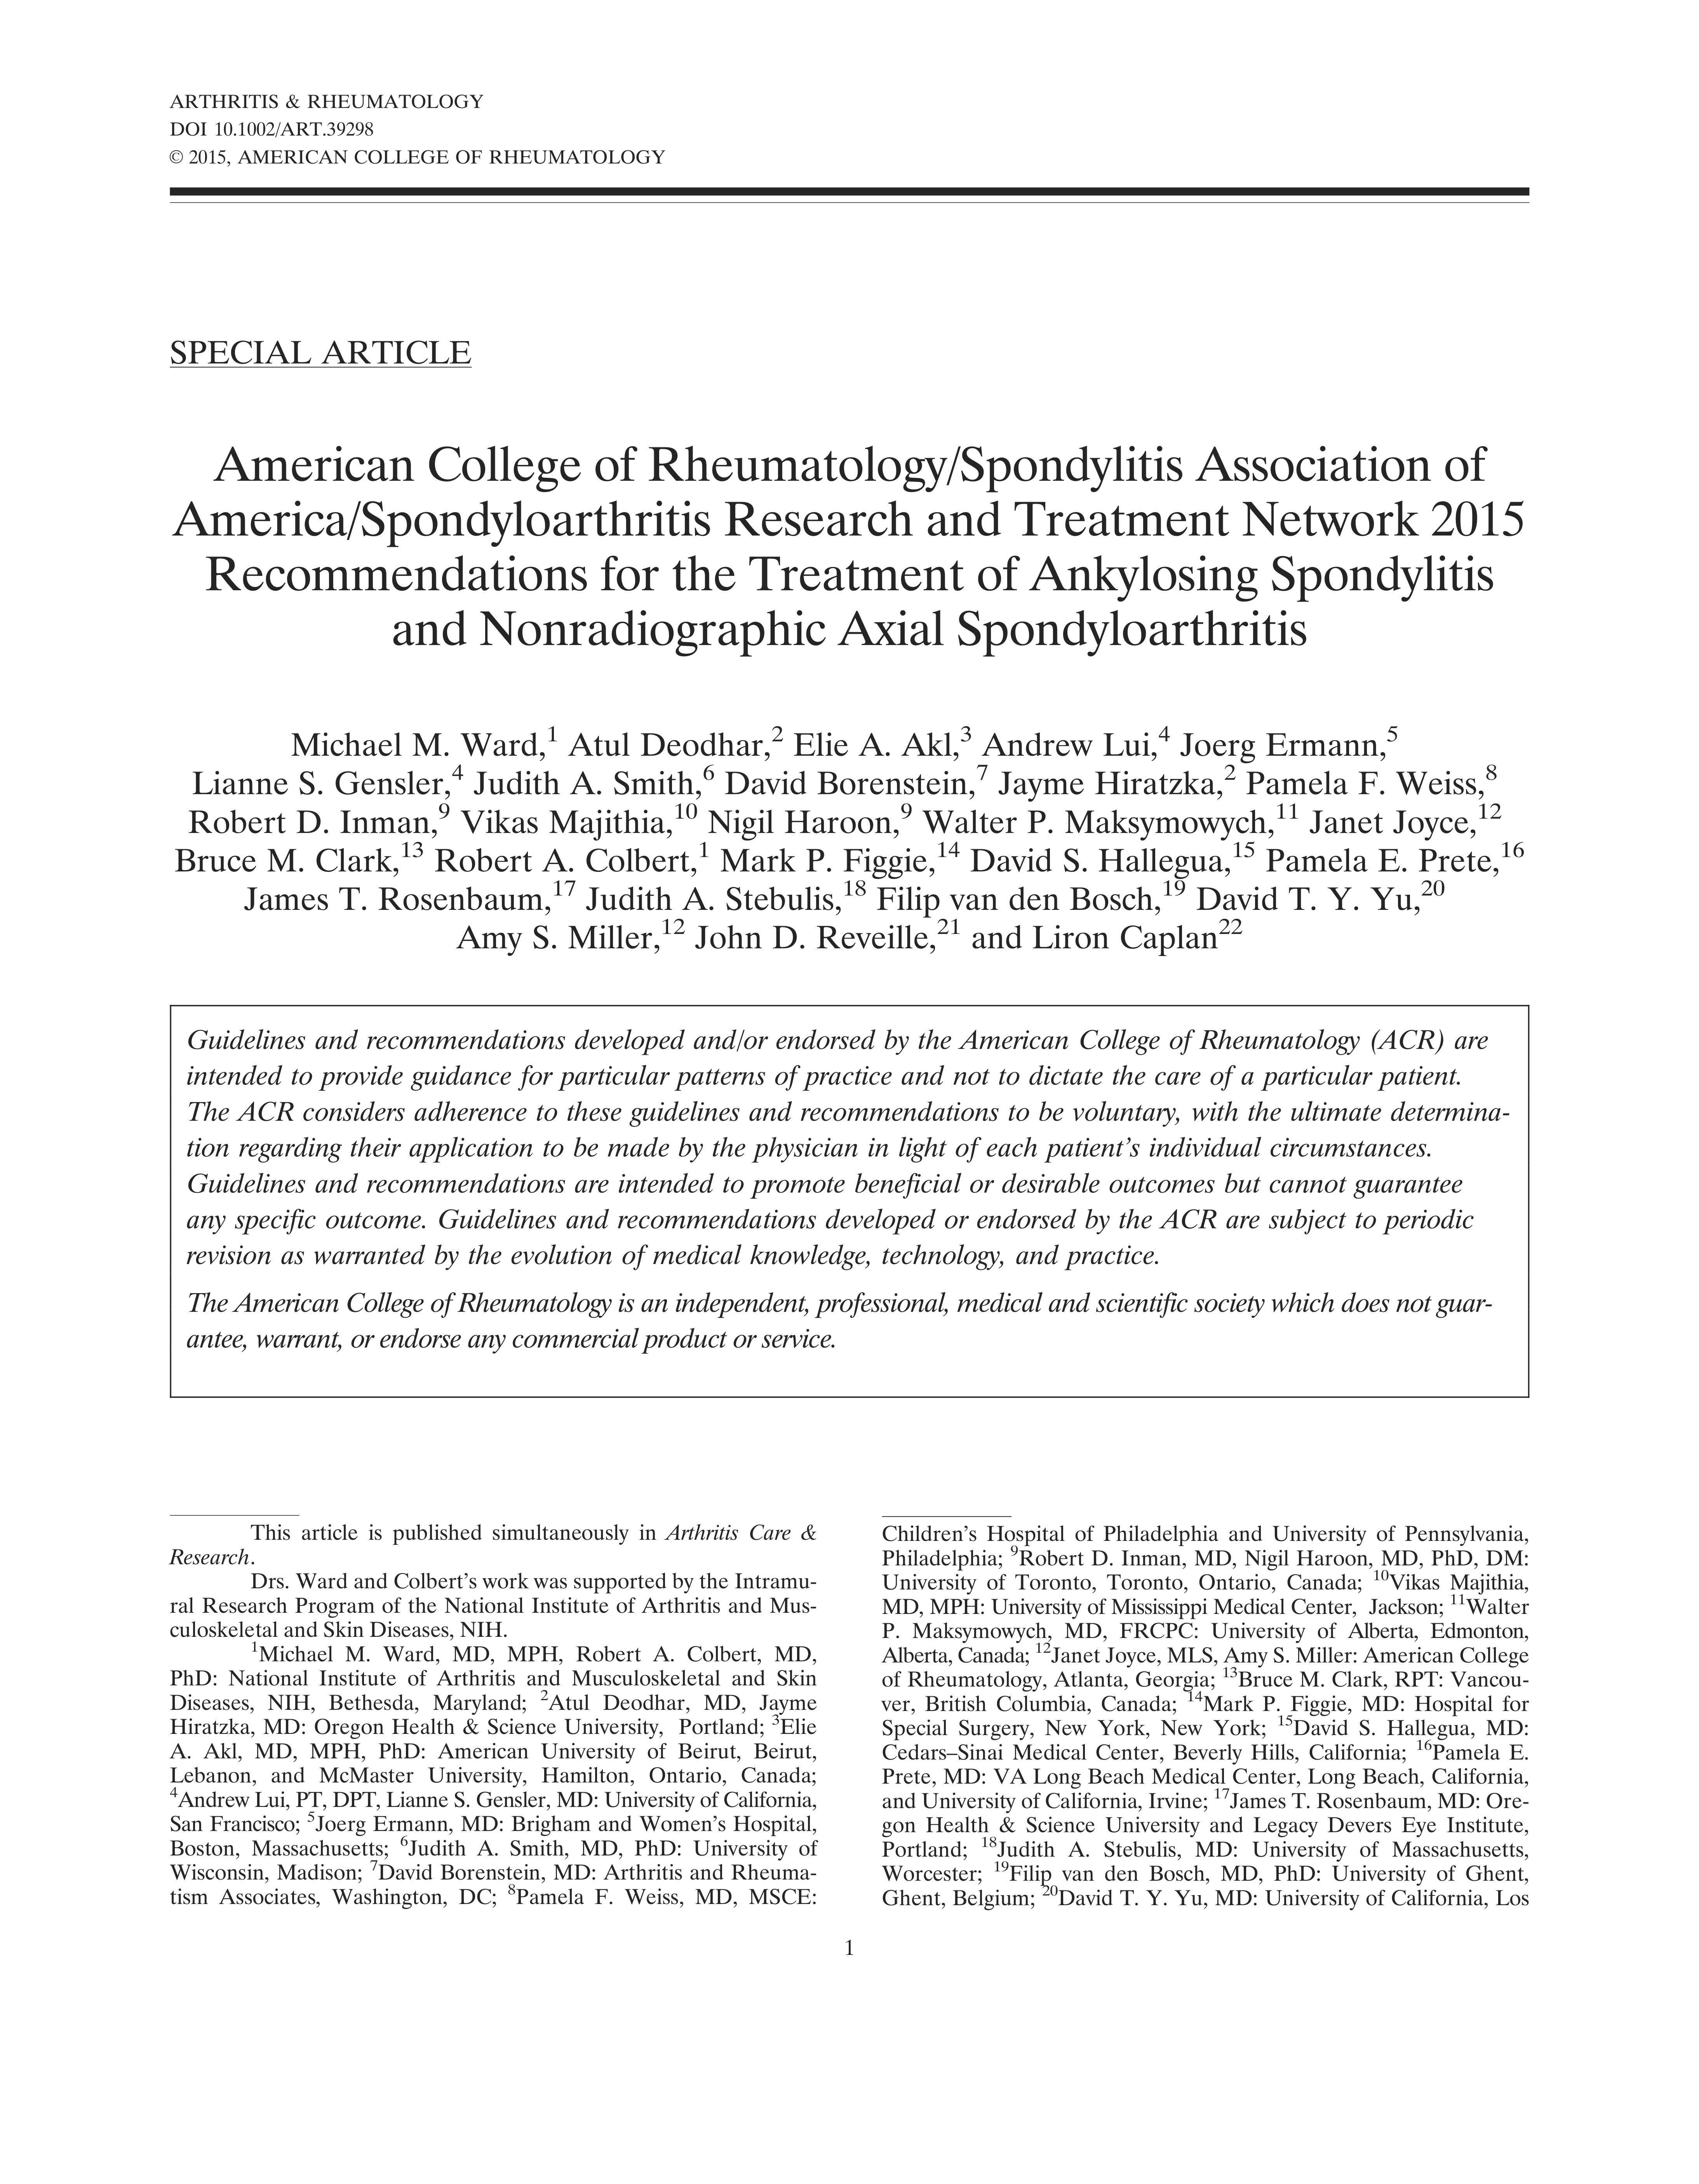 American College of Rheumatology/Spondylitis Association of America/Spondyloarthritis Research and Treatment Network 2015 Recommendations for the Treatment of Ankylosing Spondylitis and Nonradiographic Axial Spondyloarthritis